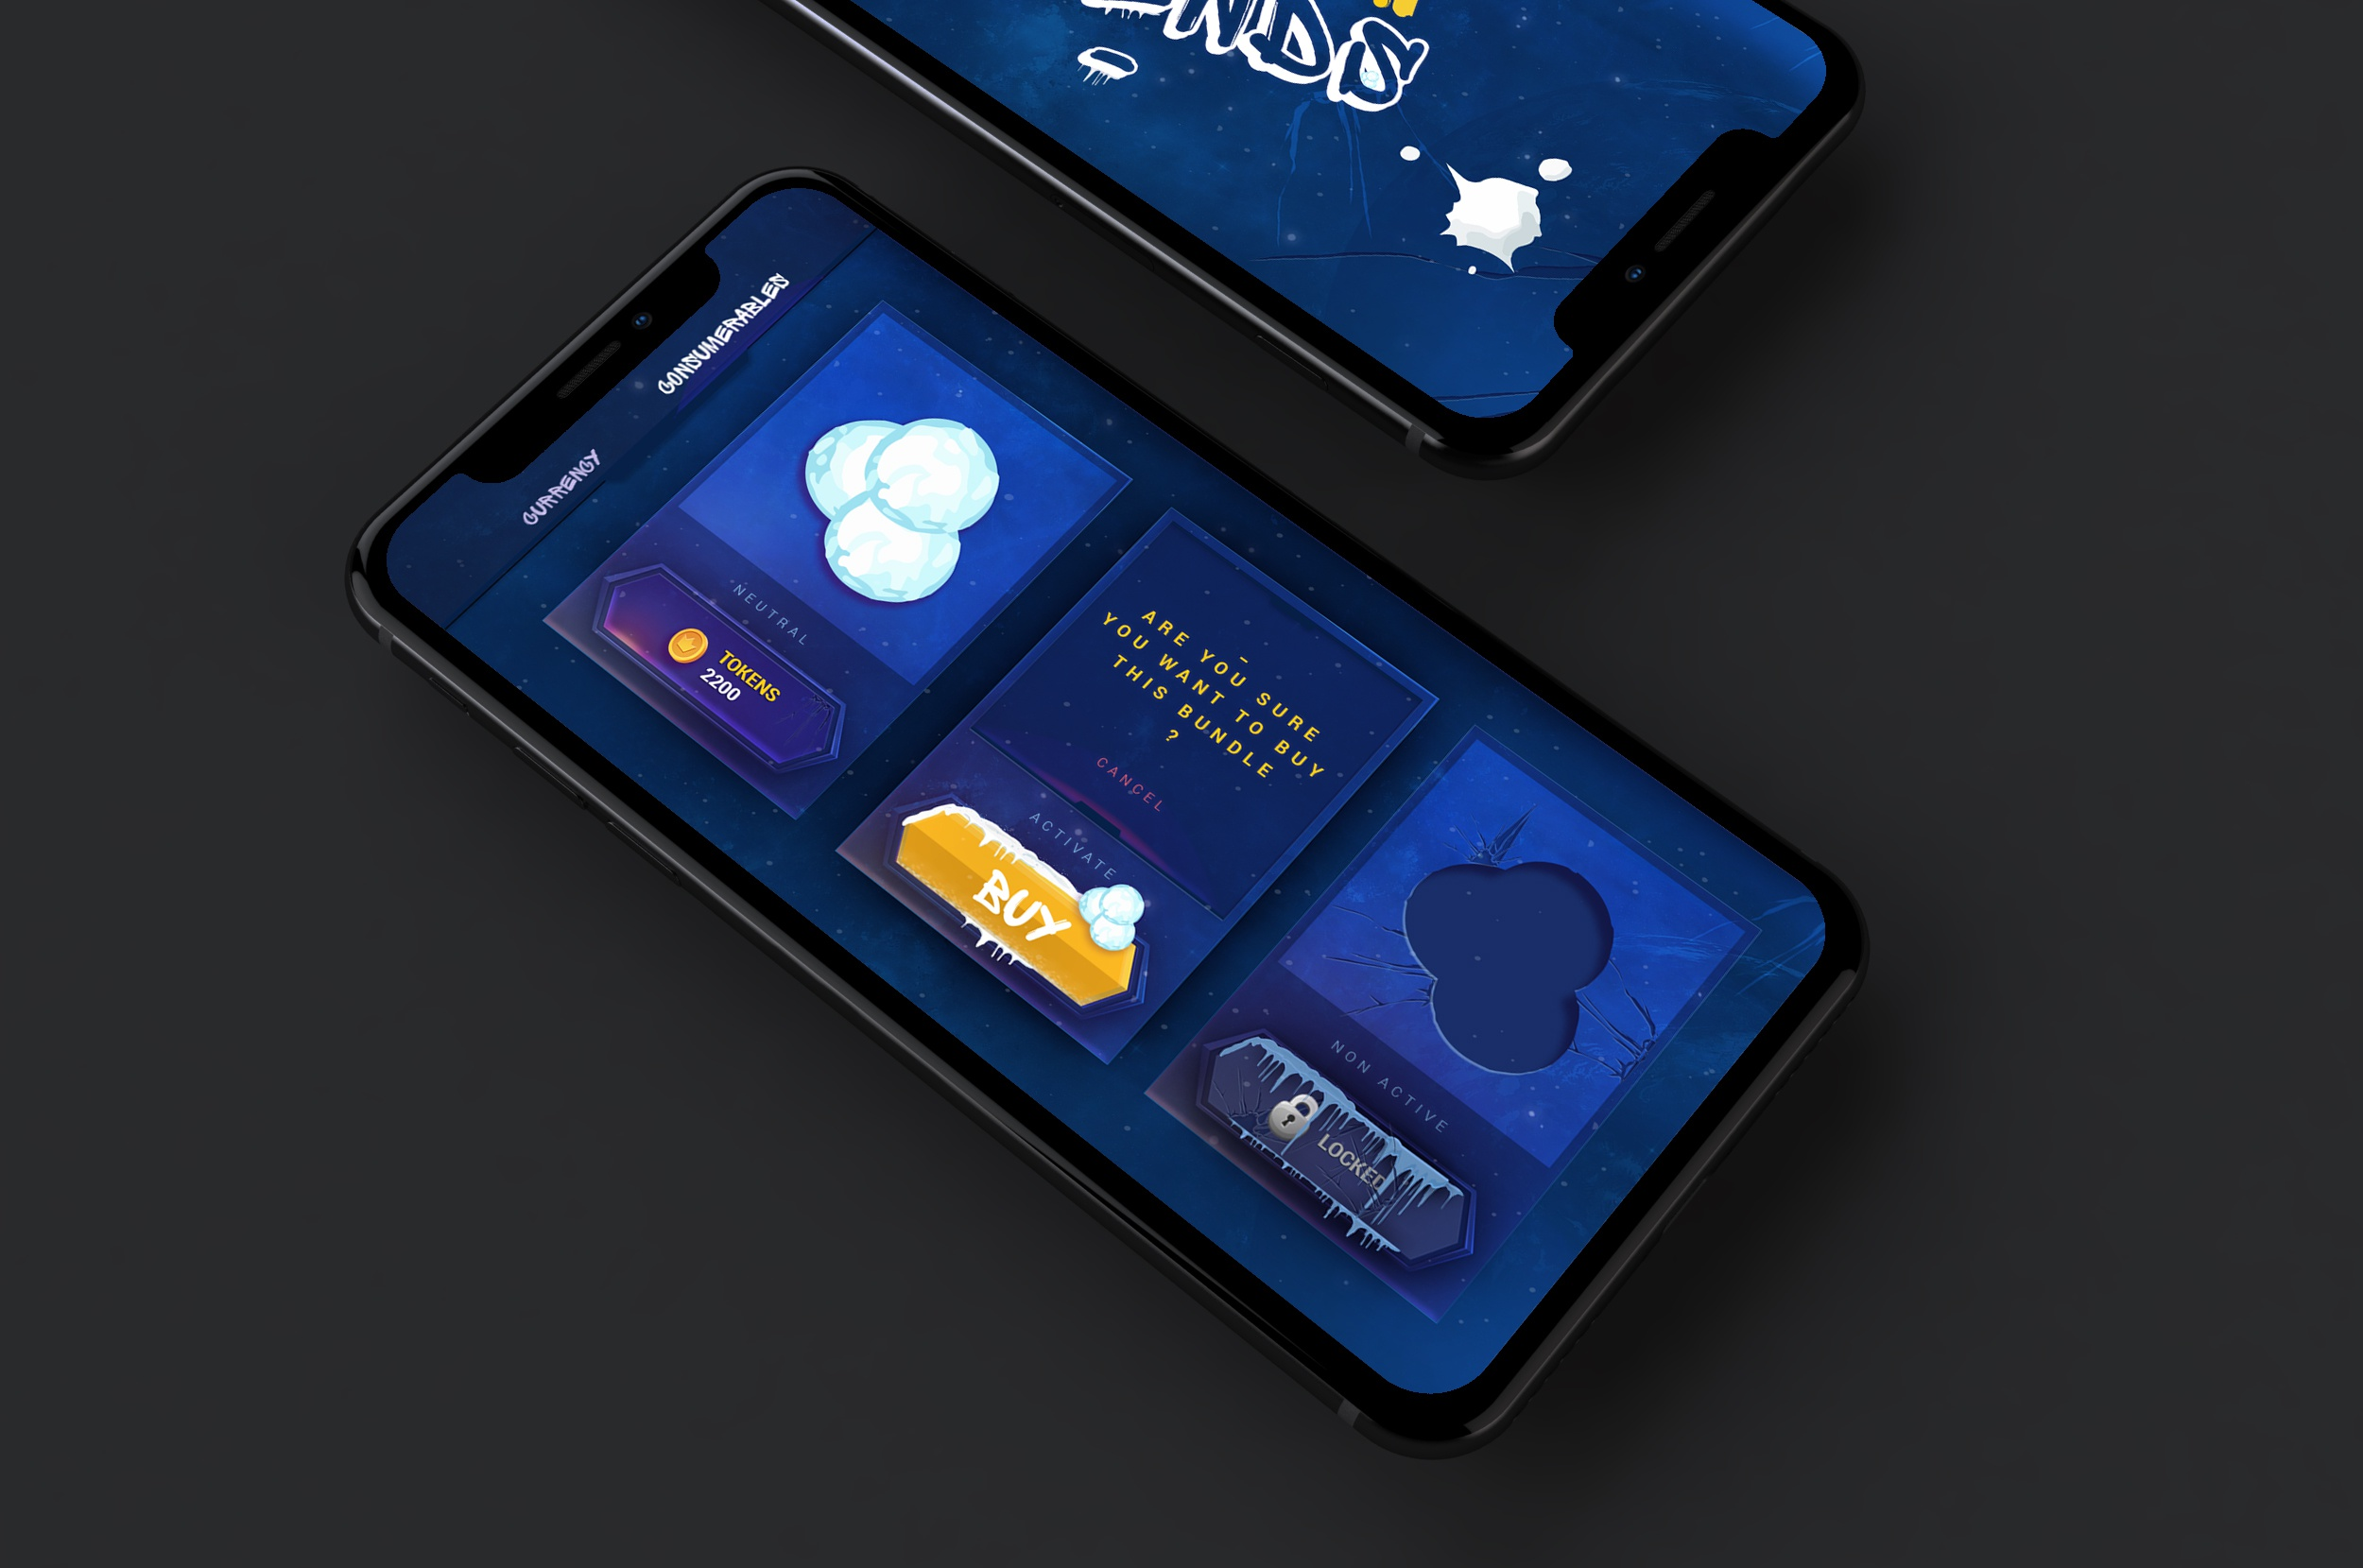 Nenad ivanovic iphonex iphone x ten game ui ux big